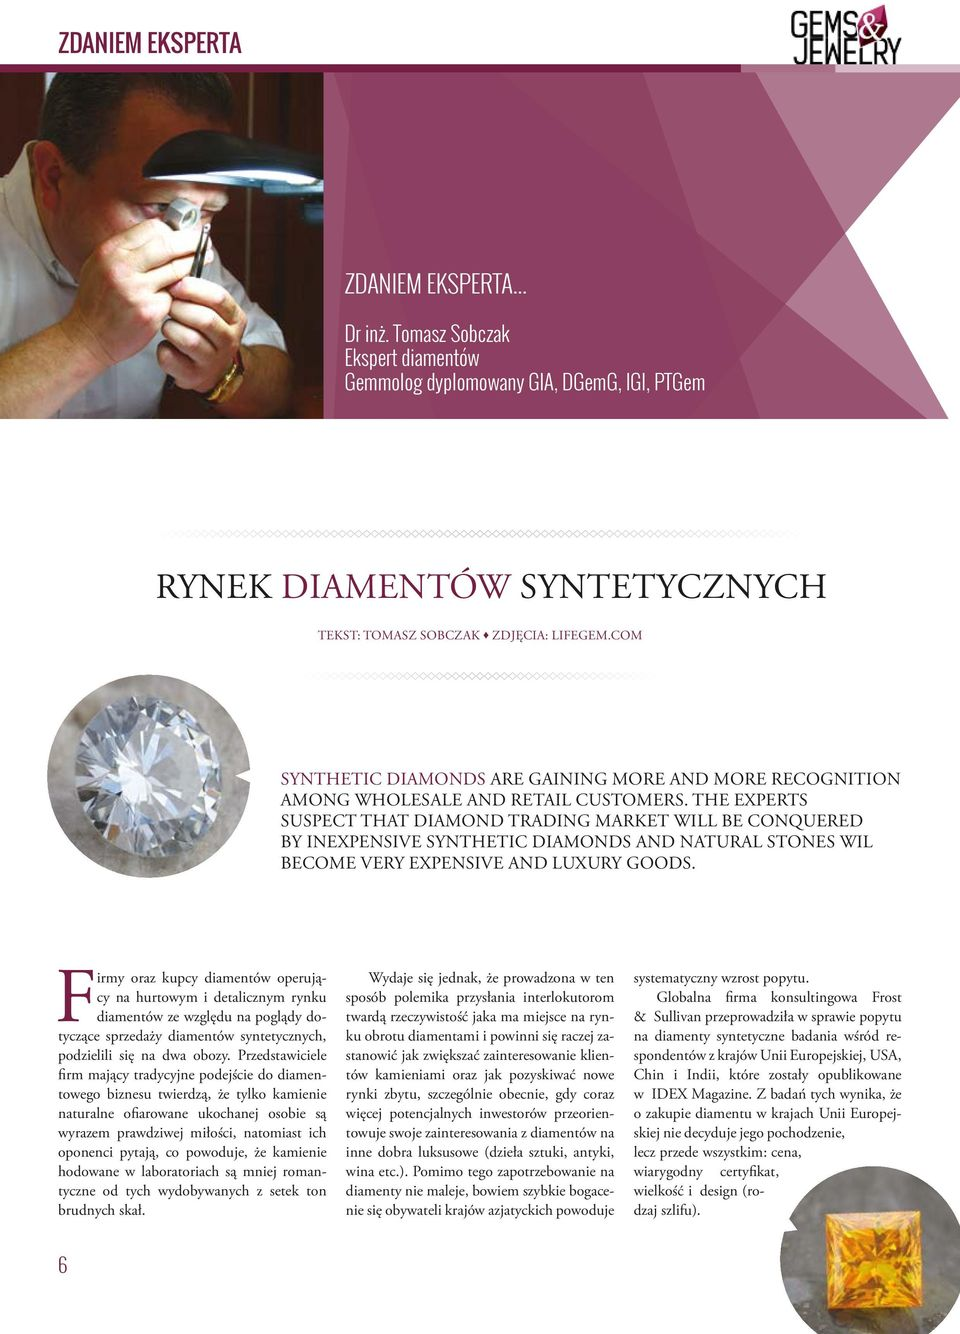 THE EXPERTS SUSPECT THAT DIAMOND TRADING MARKET WILL BE CONQUERED BY INEXPENSIVE SYNTHETIC DIAMONDS AND NATURAL STONES WIL BECOME VERY EXPENSIVE AND LUXURY GOODS.